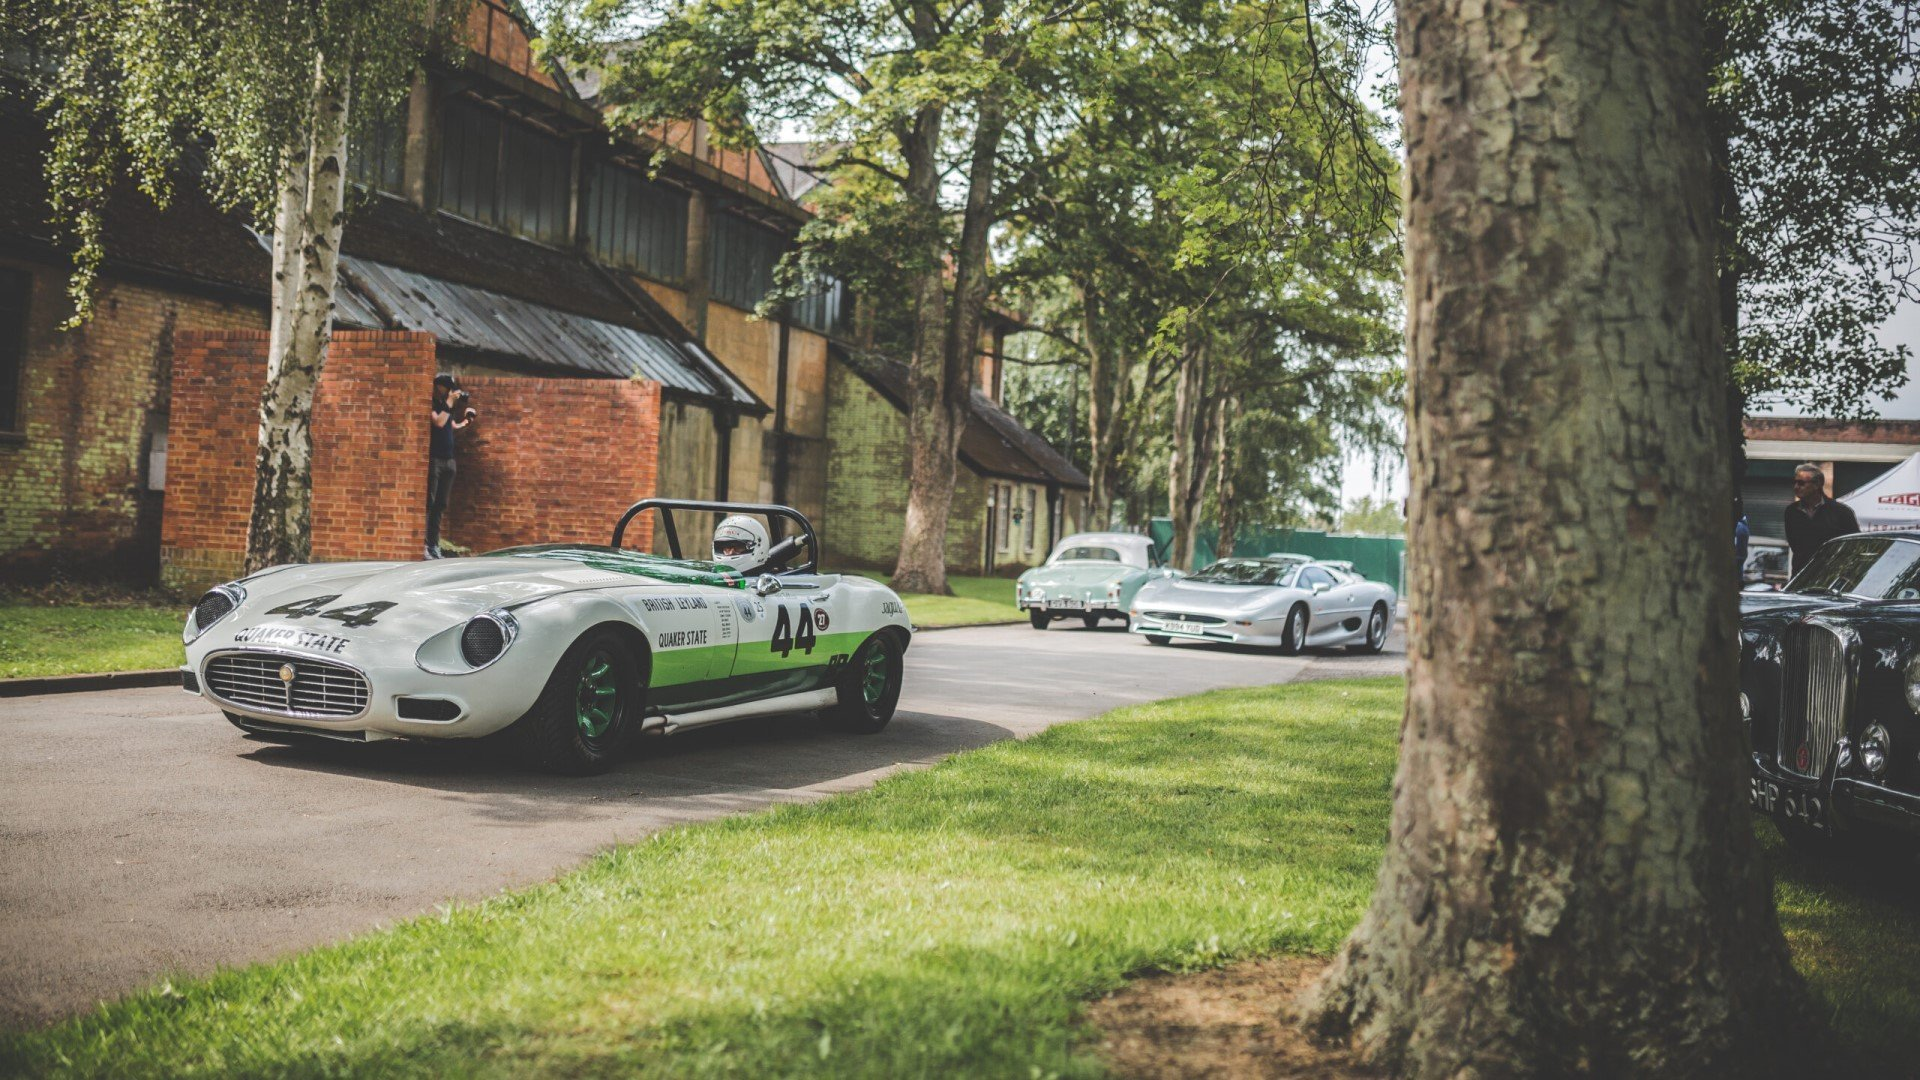 Bicester Heritage October 2020 Scamble